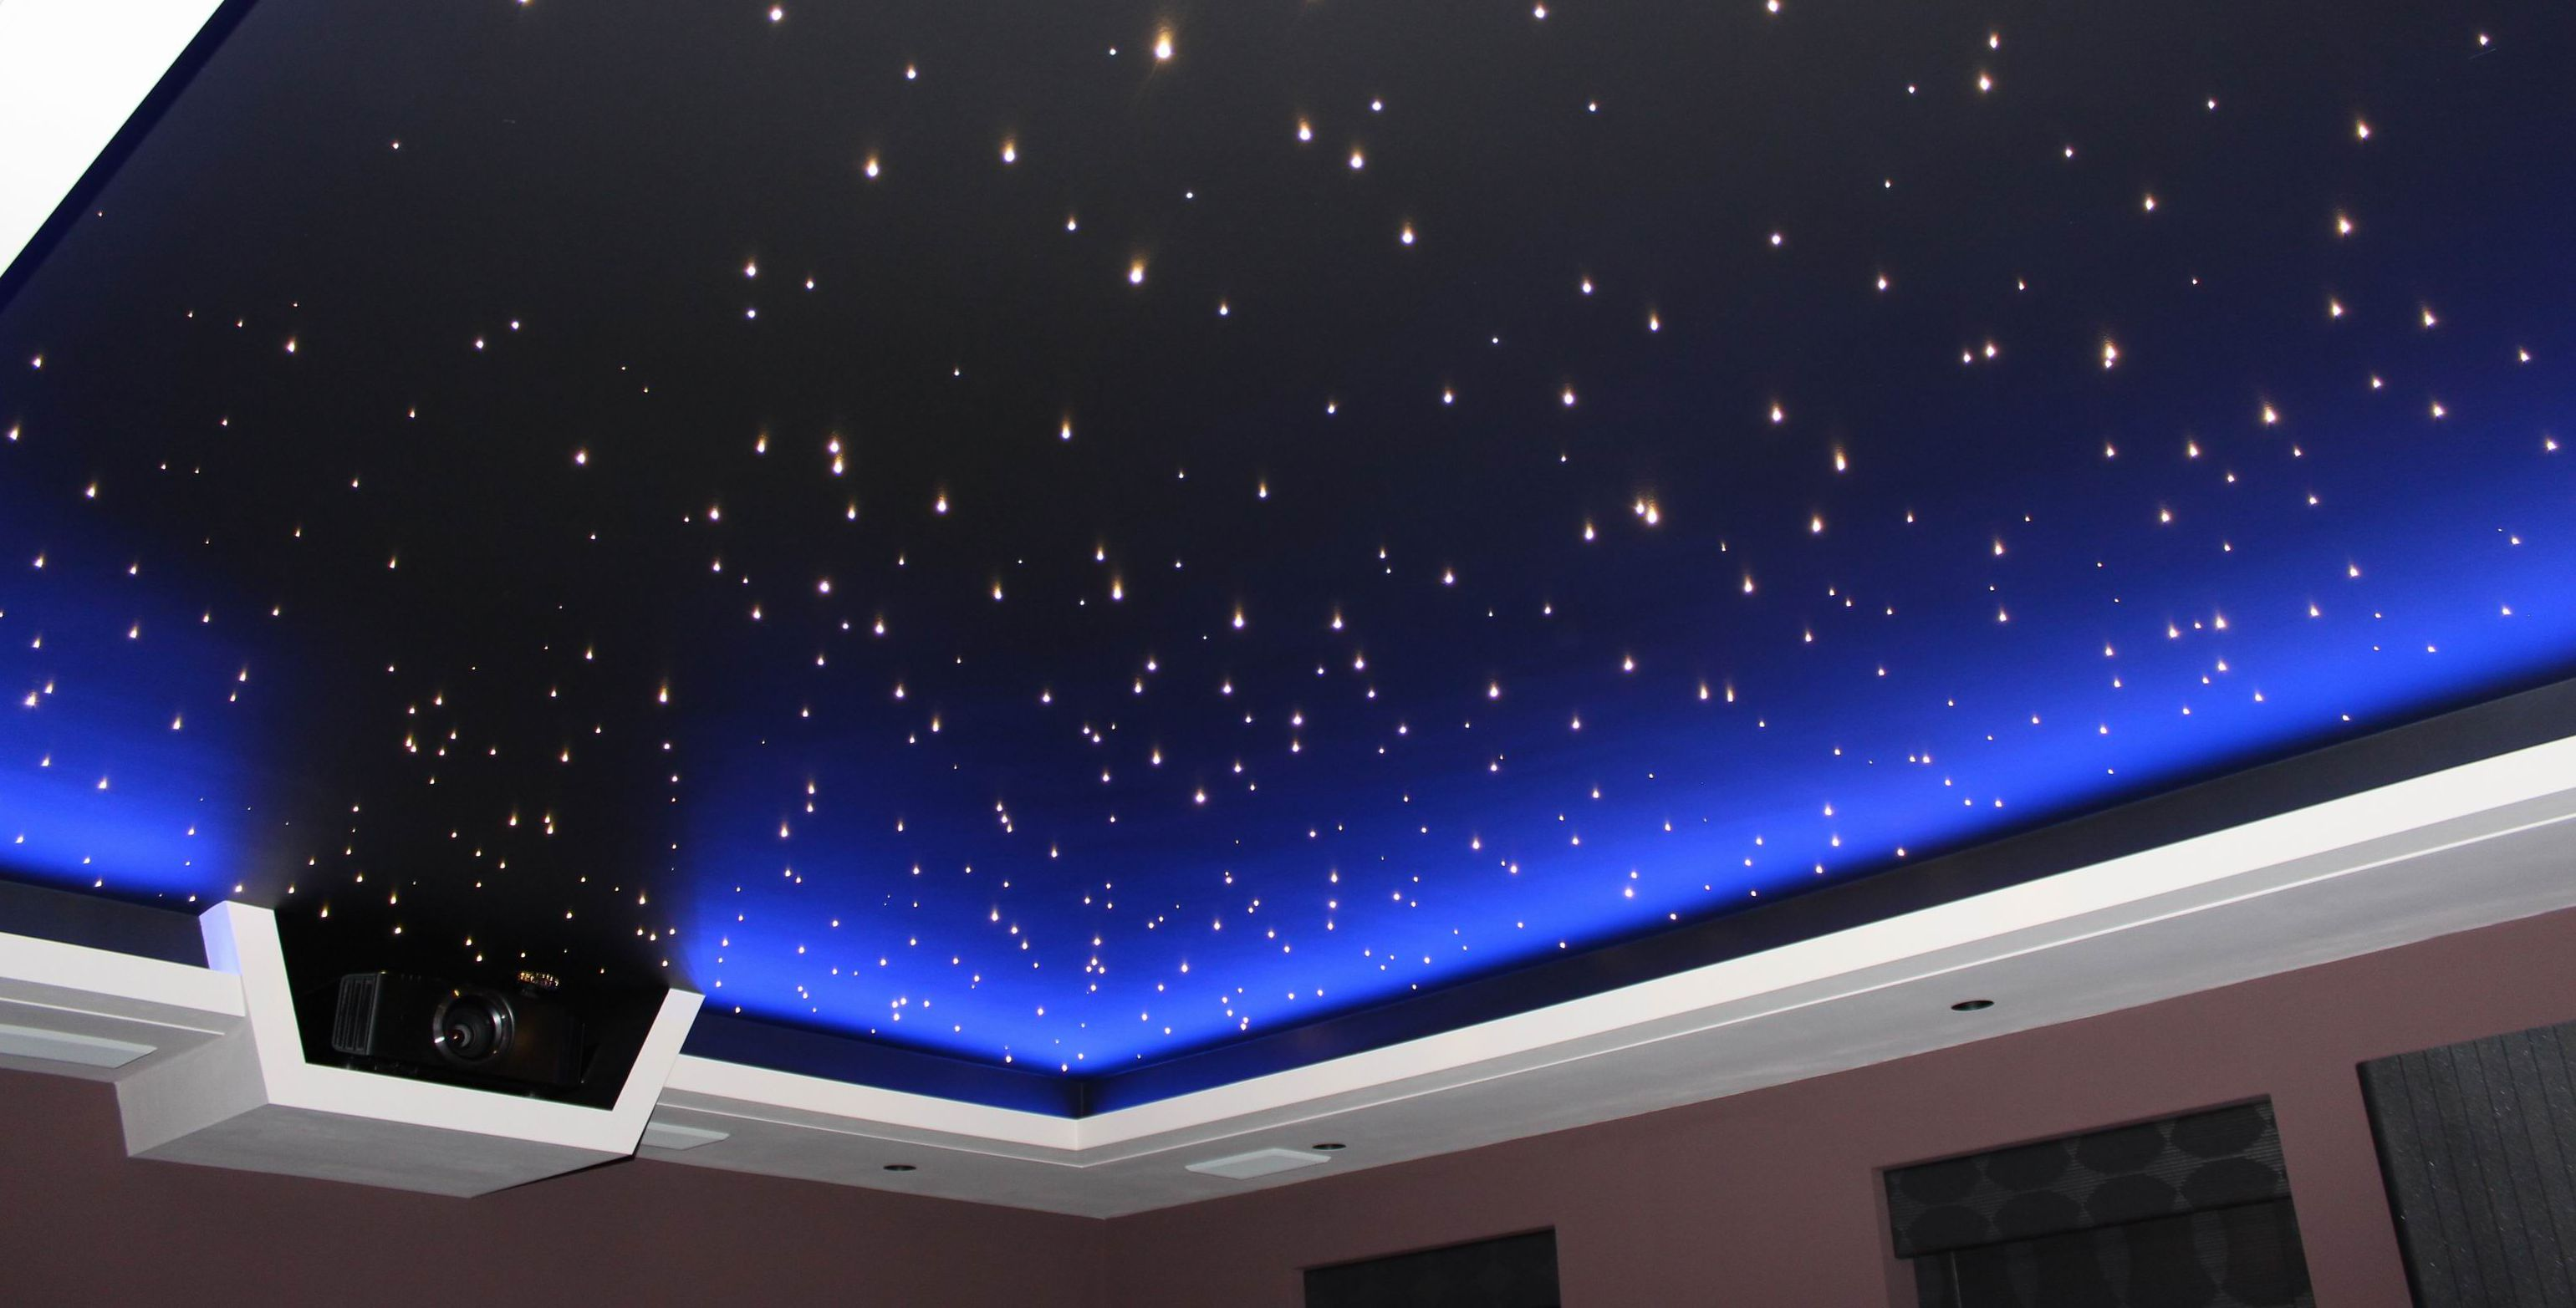 Star lights ceiling